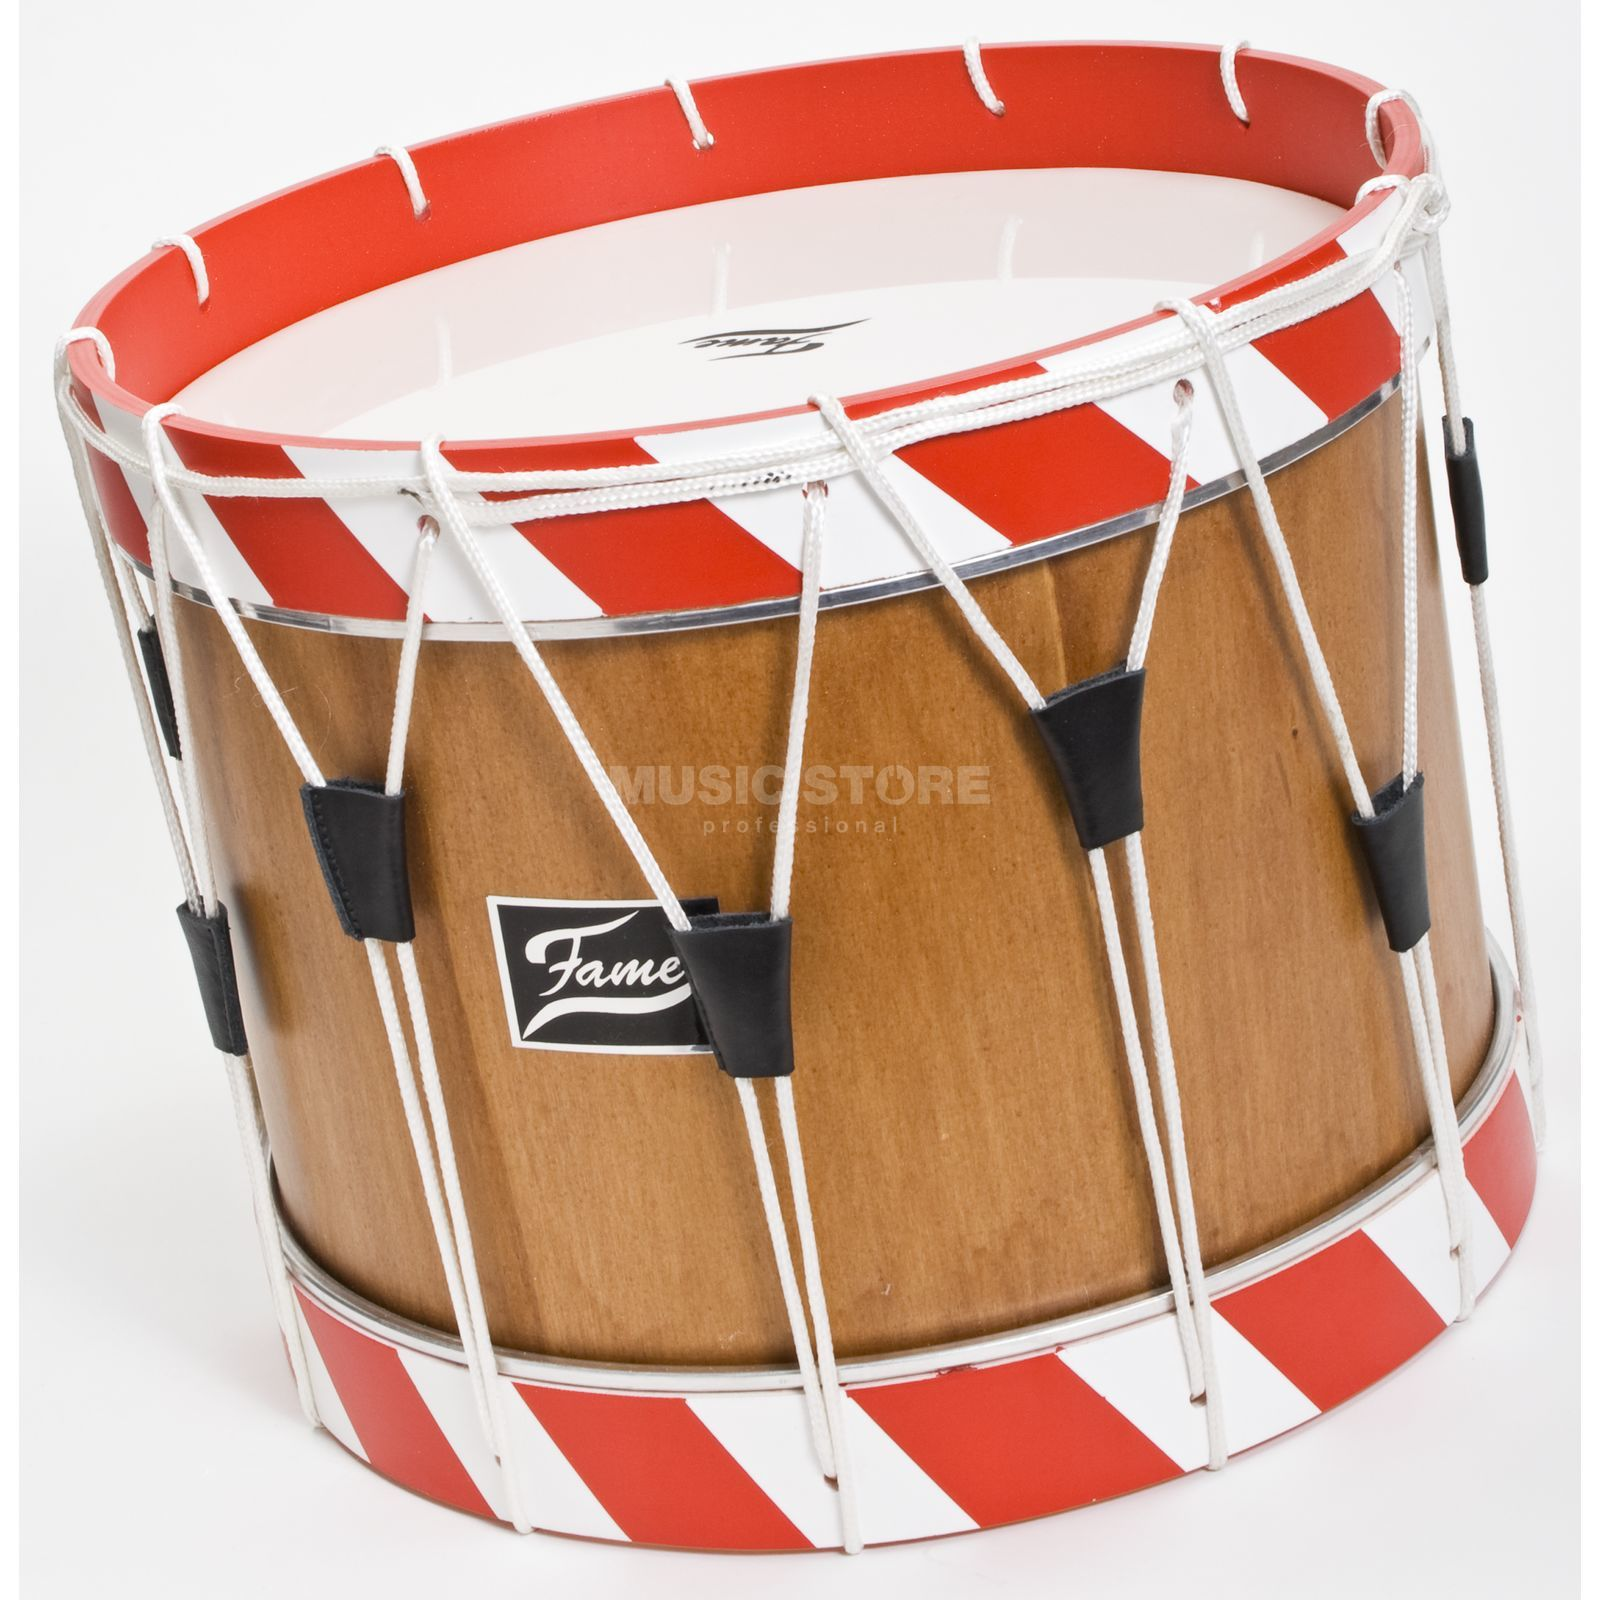 "Fame Field Drum FL142 14""x12"",  natural, red - white Immagine prodotto"